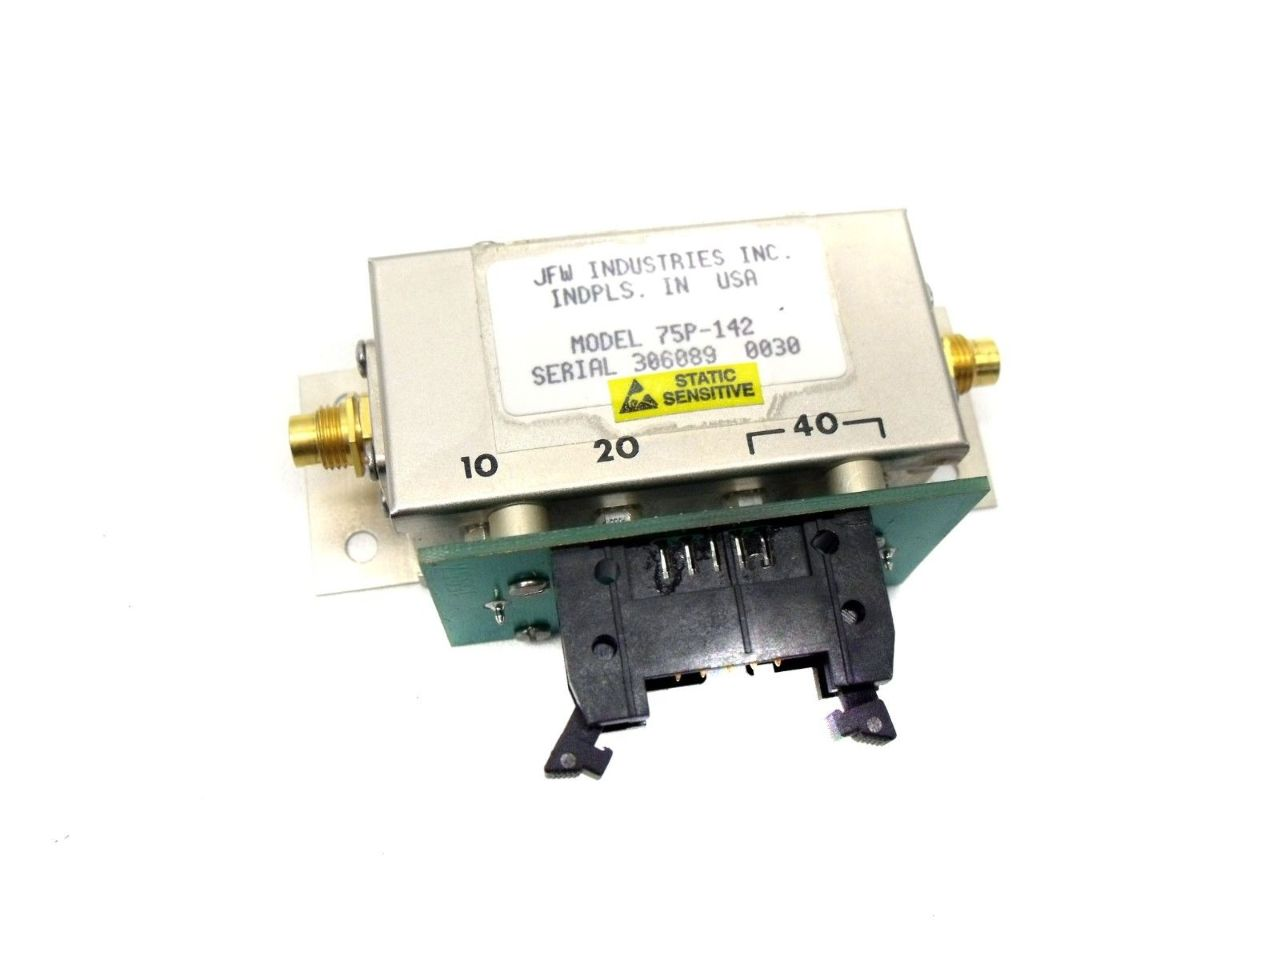 New JFW Industries 75P-142 Ohm Solid State Programmable Attenuator